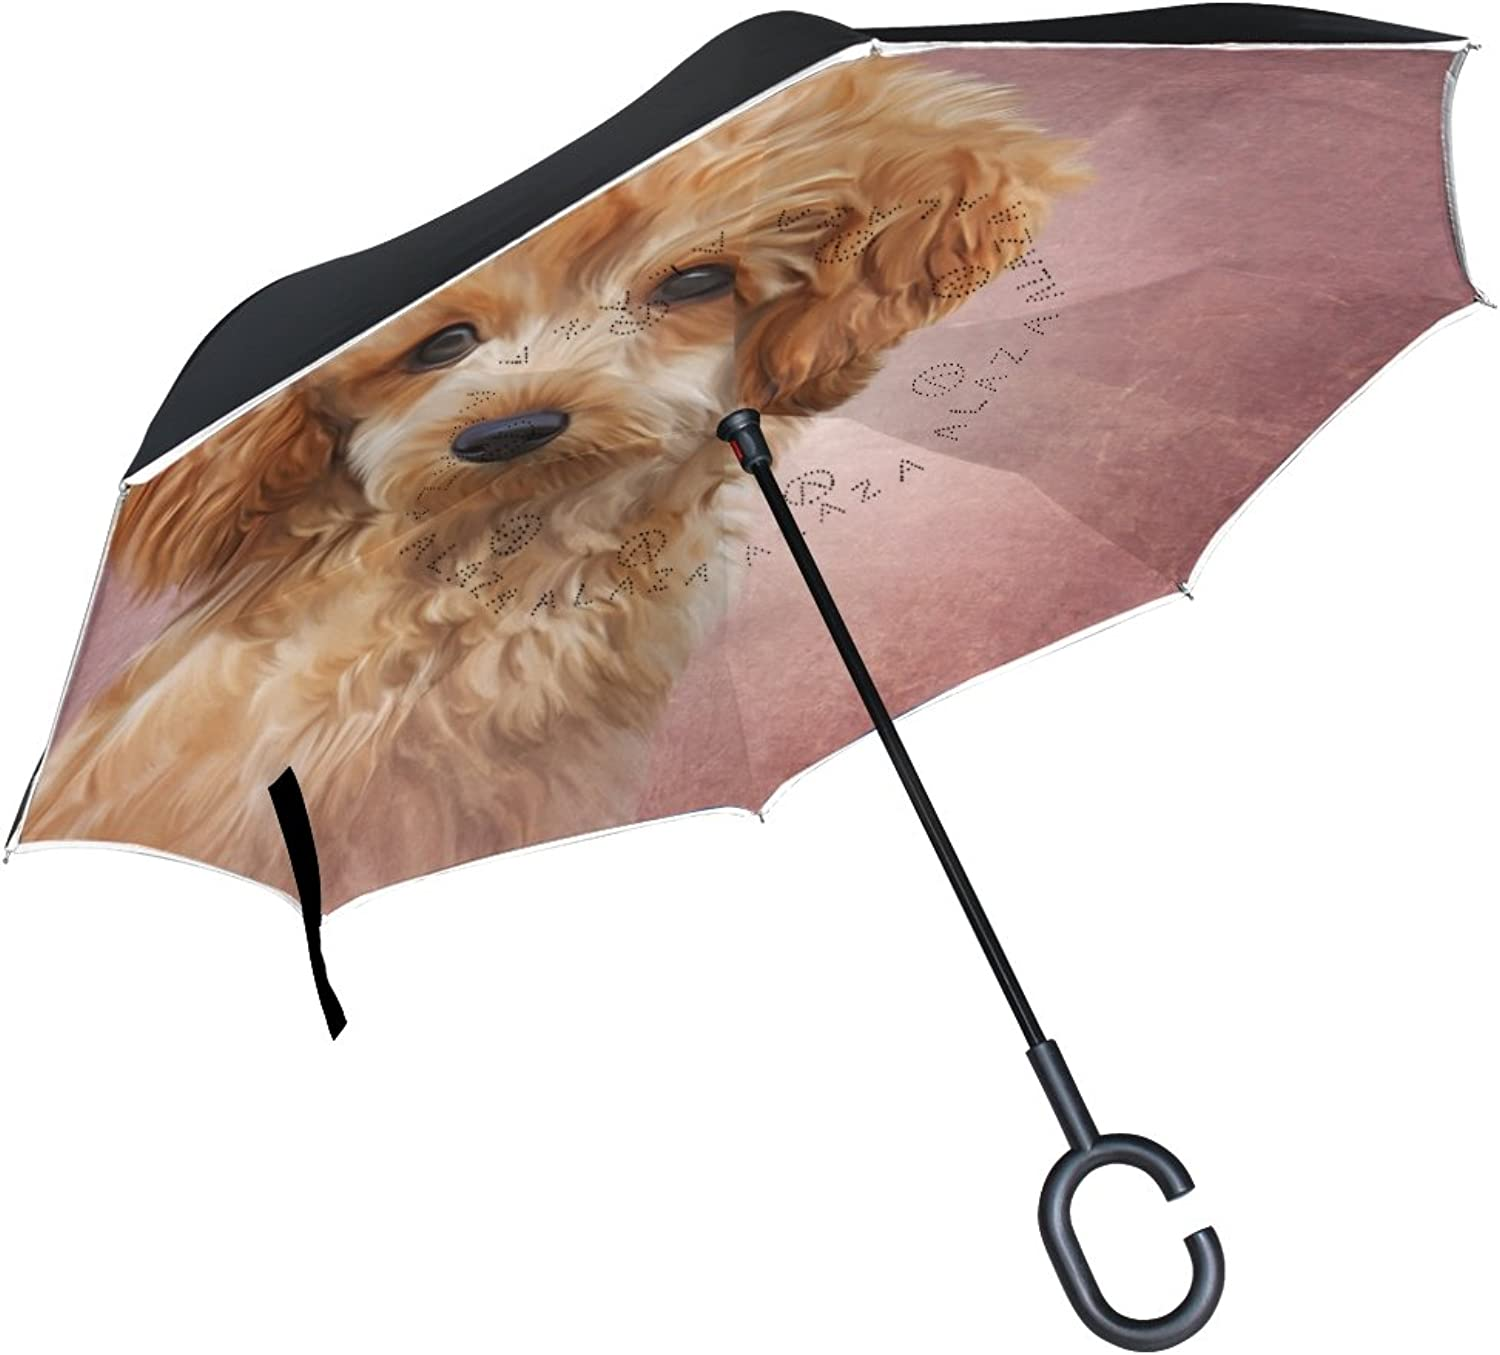 My Daily Double Layer Ingreened Umbrella Cars Reverse Umbrella Toy Poodle Puppy Dog Windproof UV Proof Travel Outdoor Umbrella